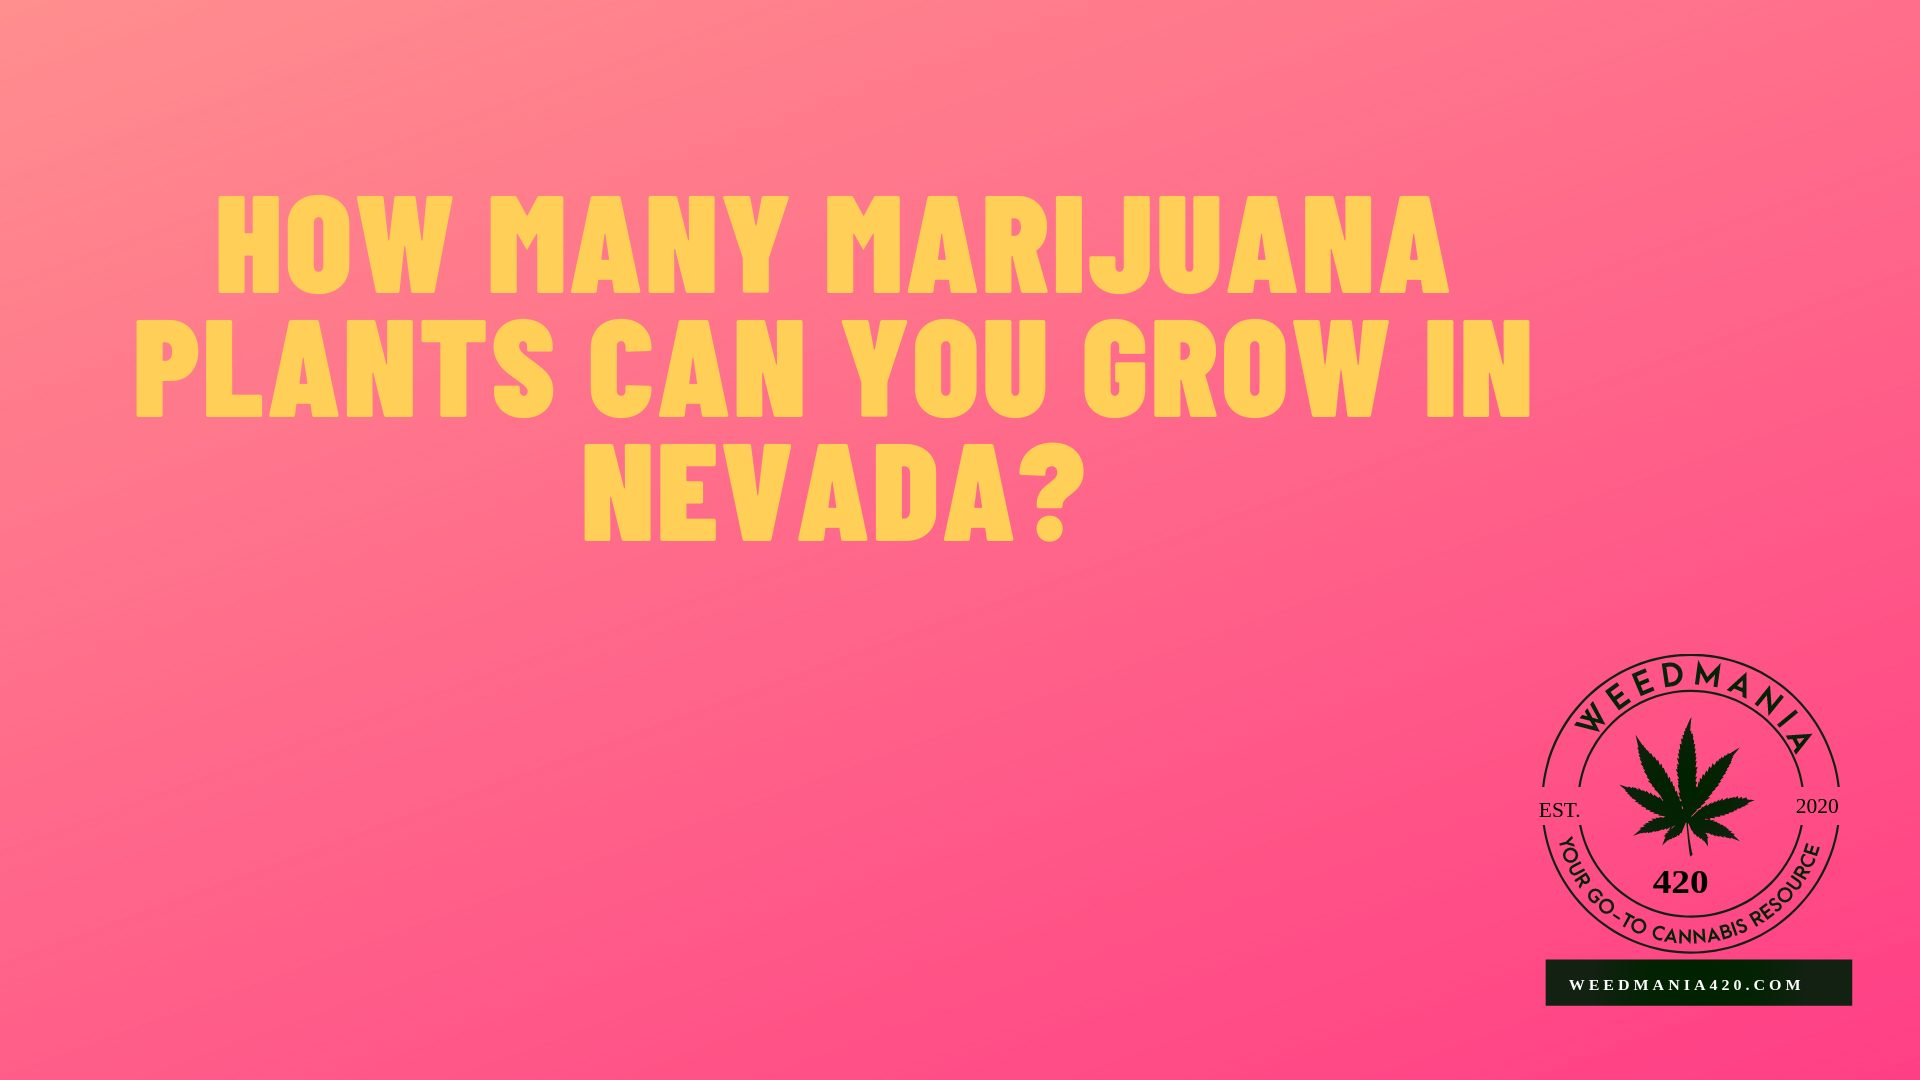 How Many Marijuana Plants Can You Grow in Nevada?